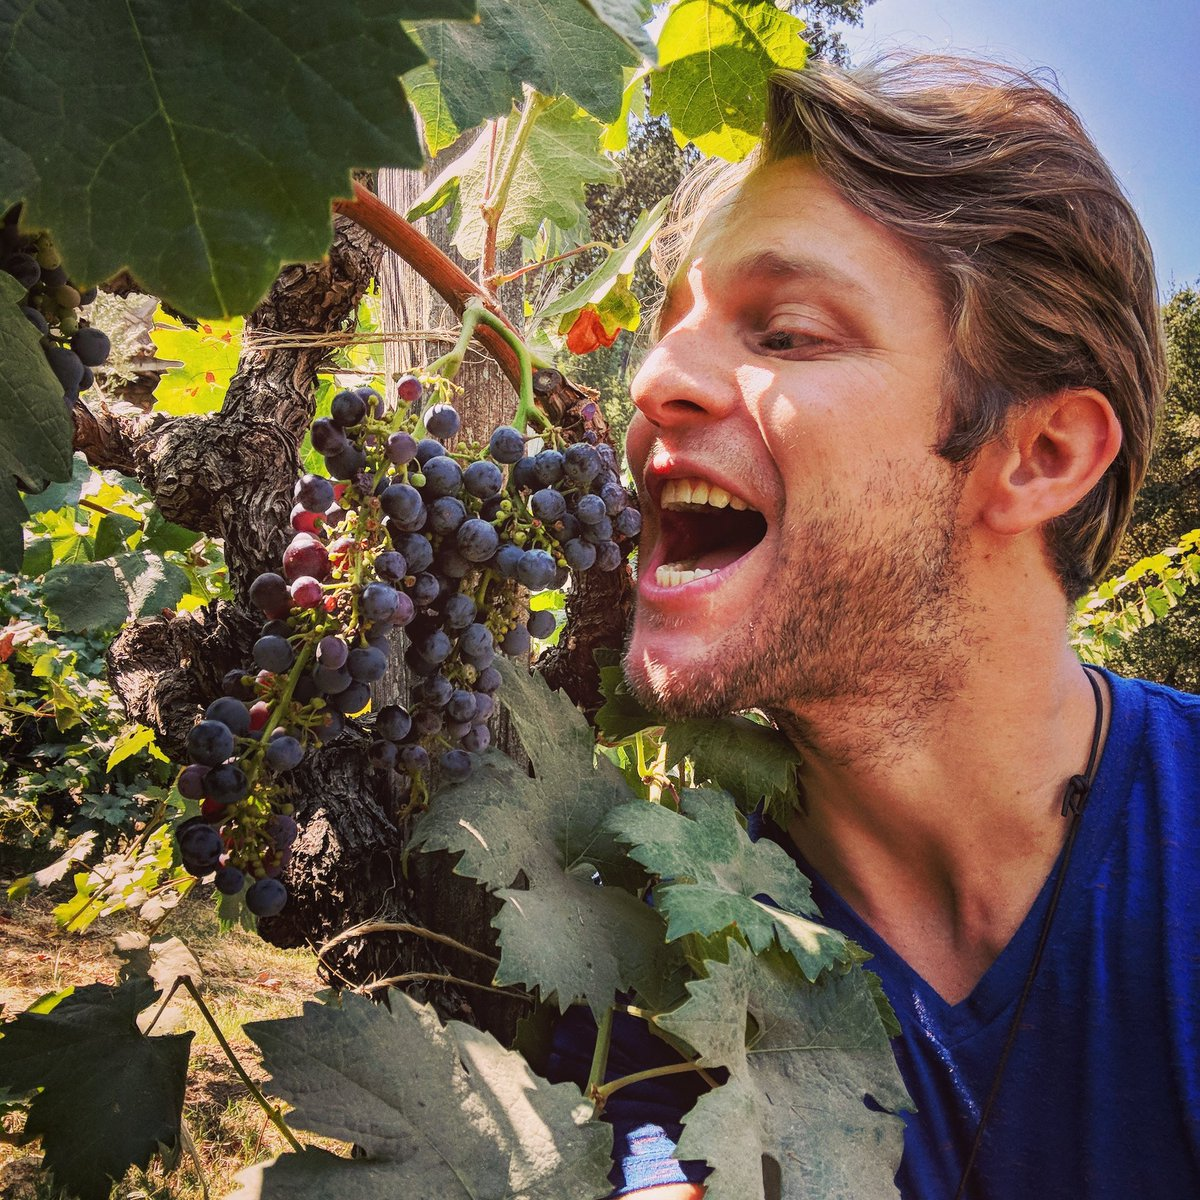 RT @ChaseRColeman: In #napavalley and I can't help myself... YUMMY!   #rockon #grapes #wine #manicmonday https://t.co/tTLtqtJ3KF